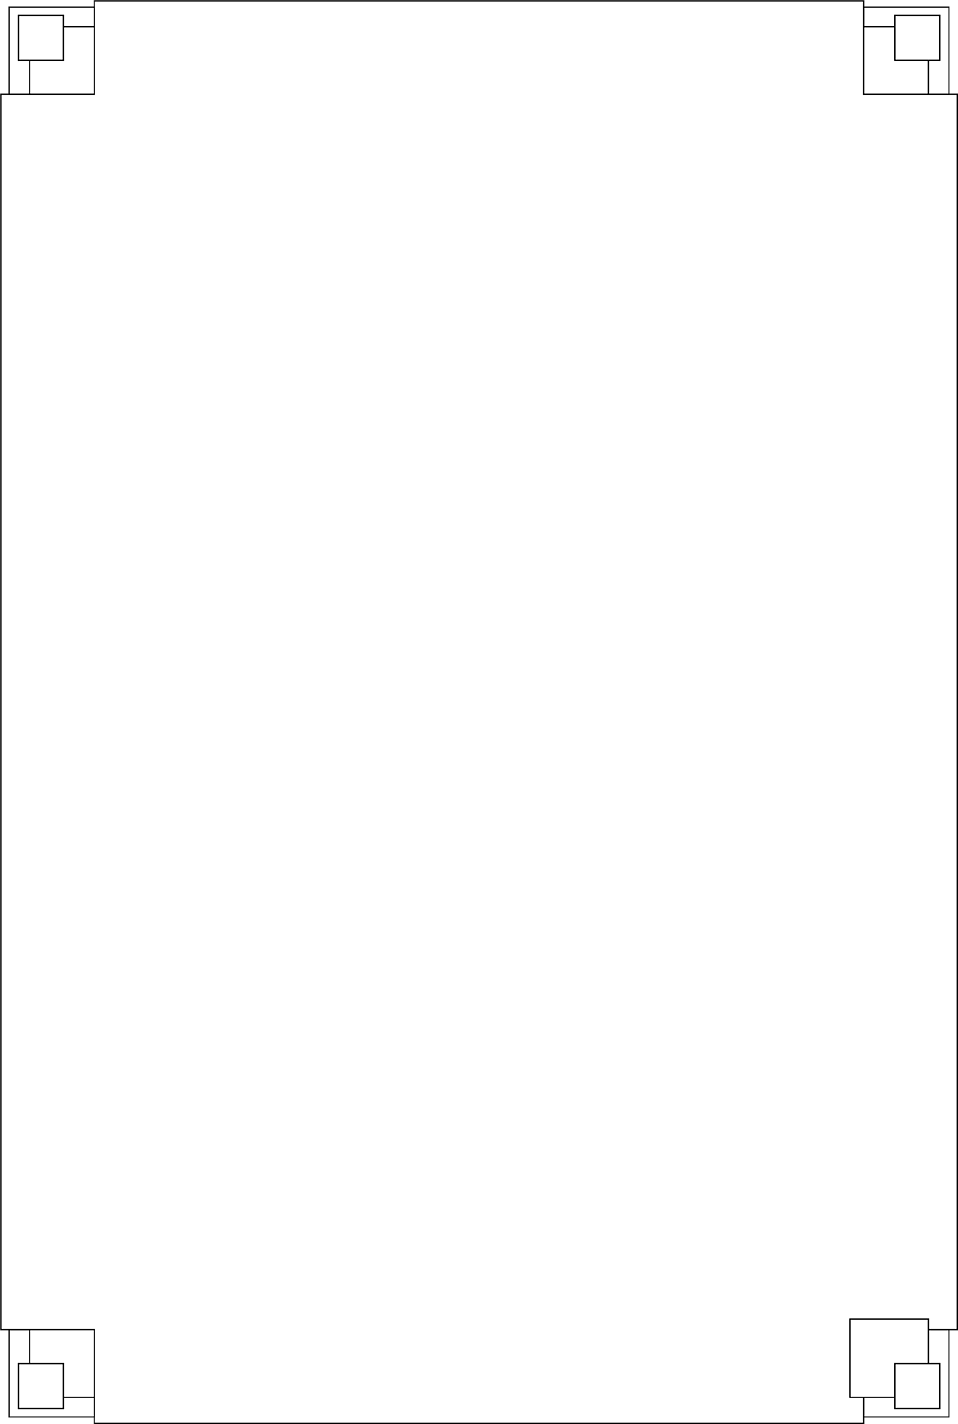 Illustration of a blank frame with square corners : Free Stock Photo